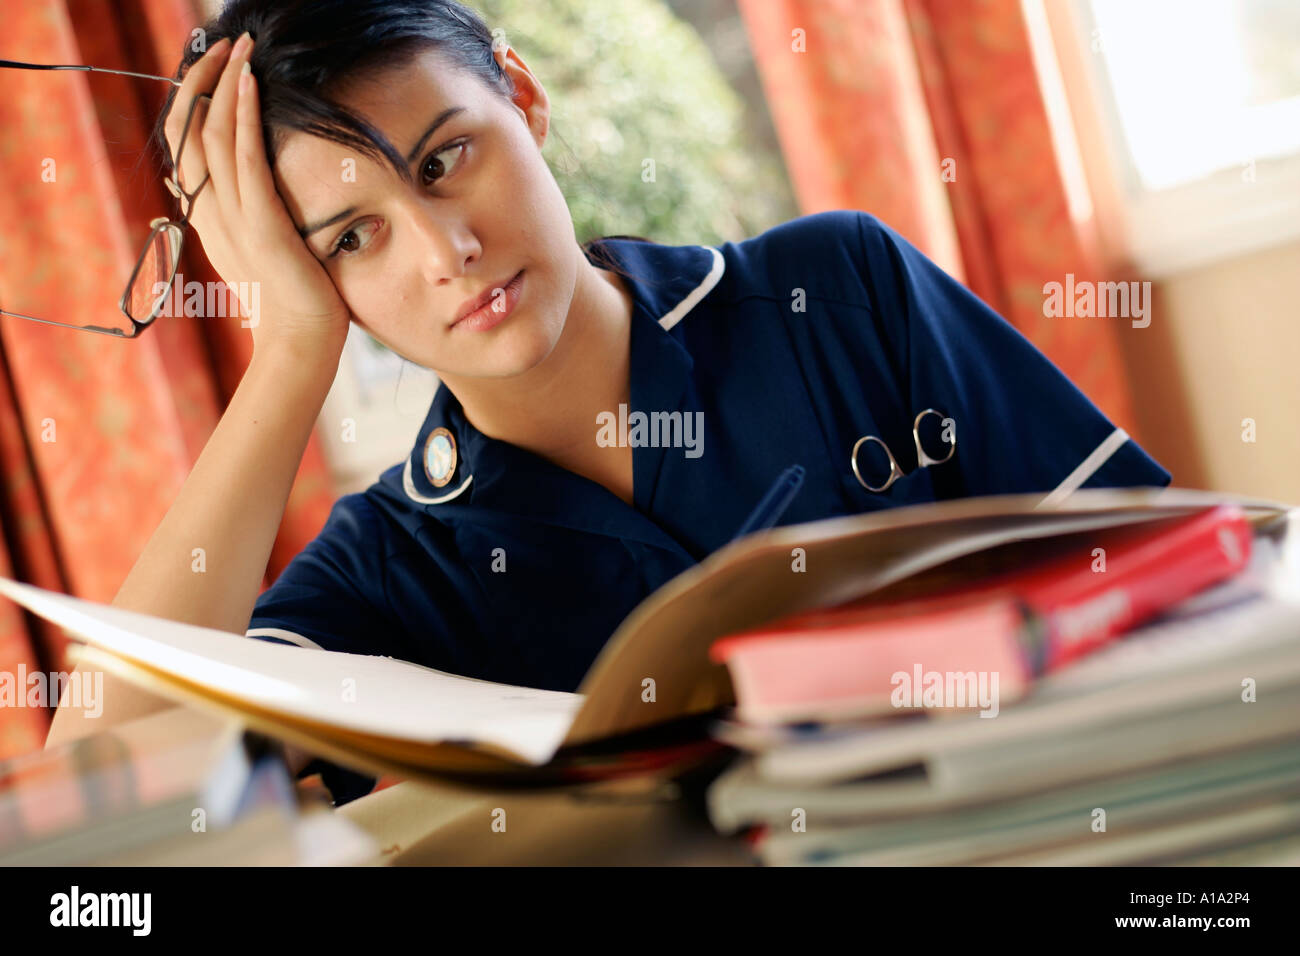 Nurse looking tired as she revises for exams - Stock Image